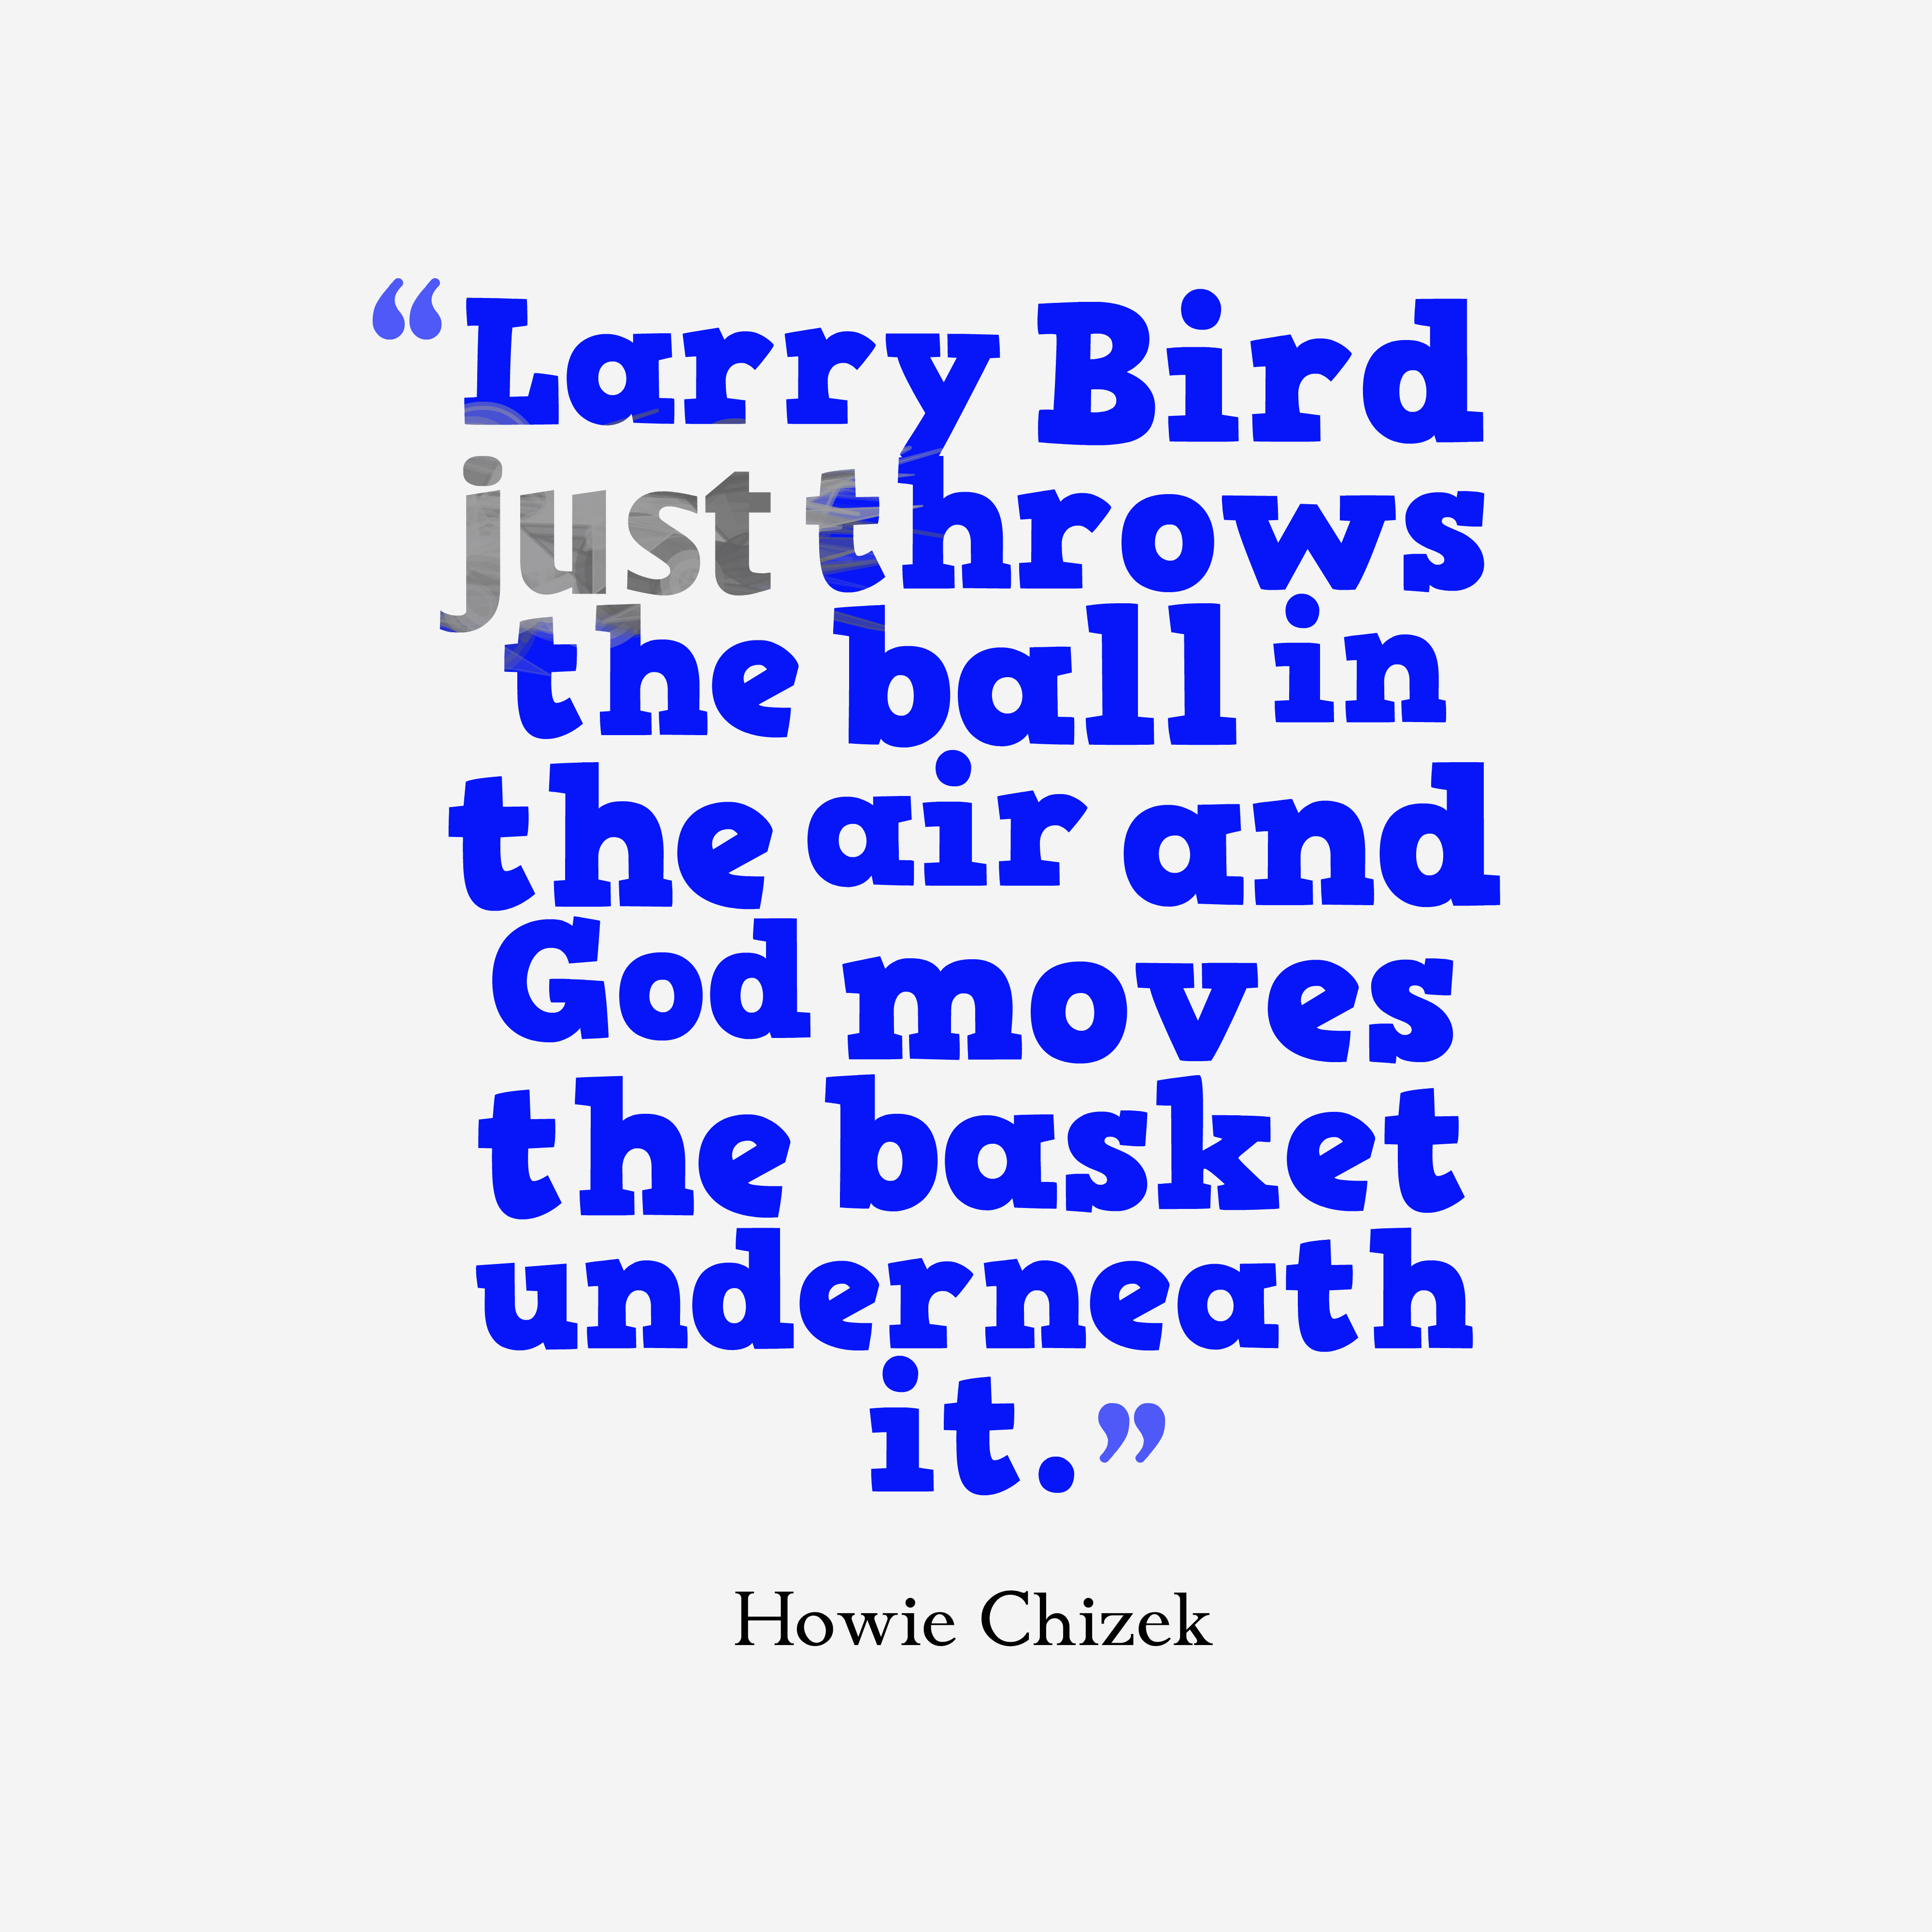 Quotes image of Larry Bird just throws the ball in the air and God moves the basket underneath it.